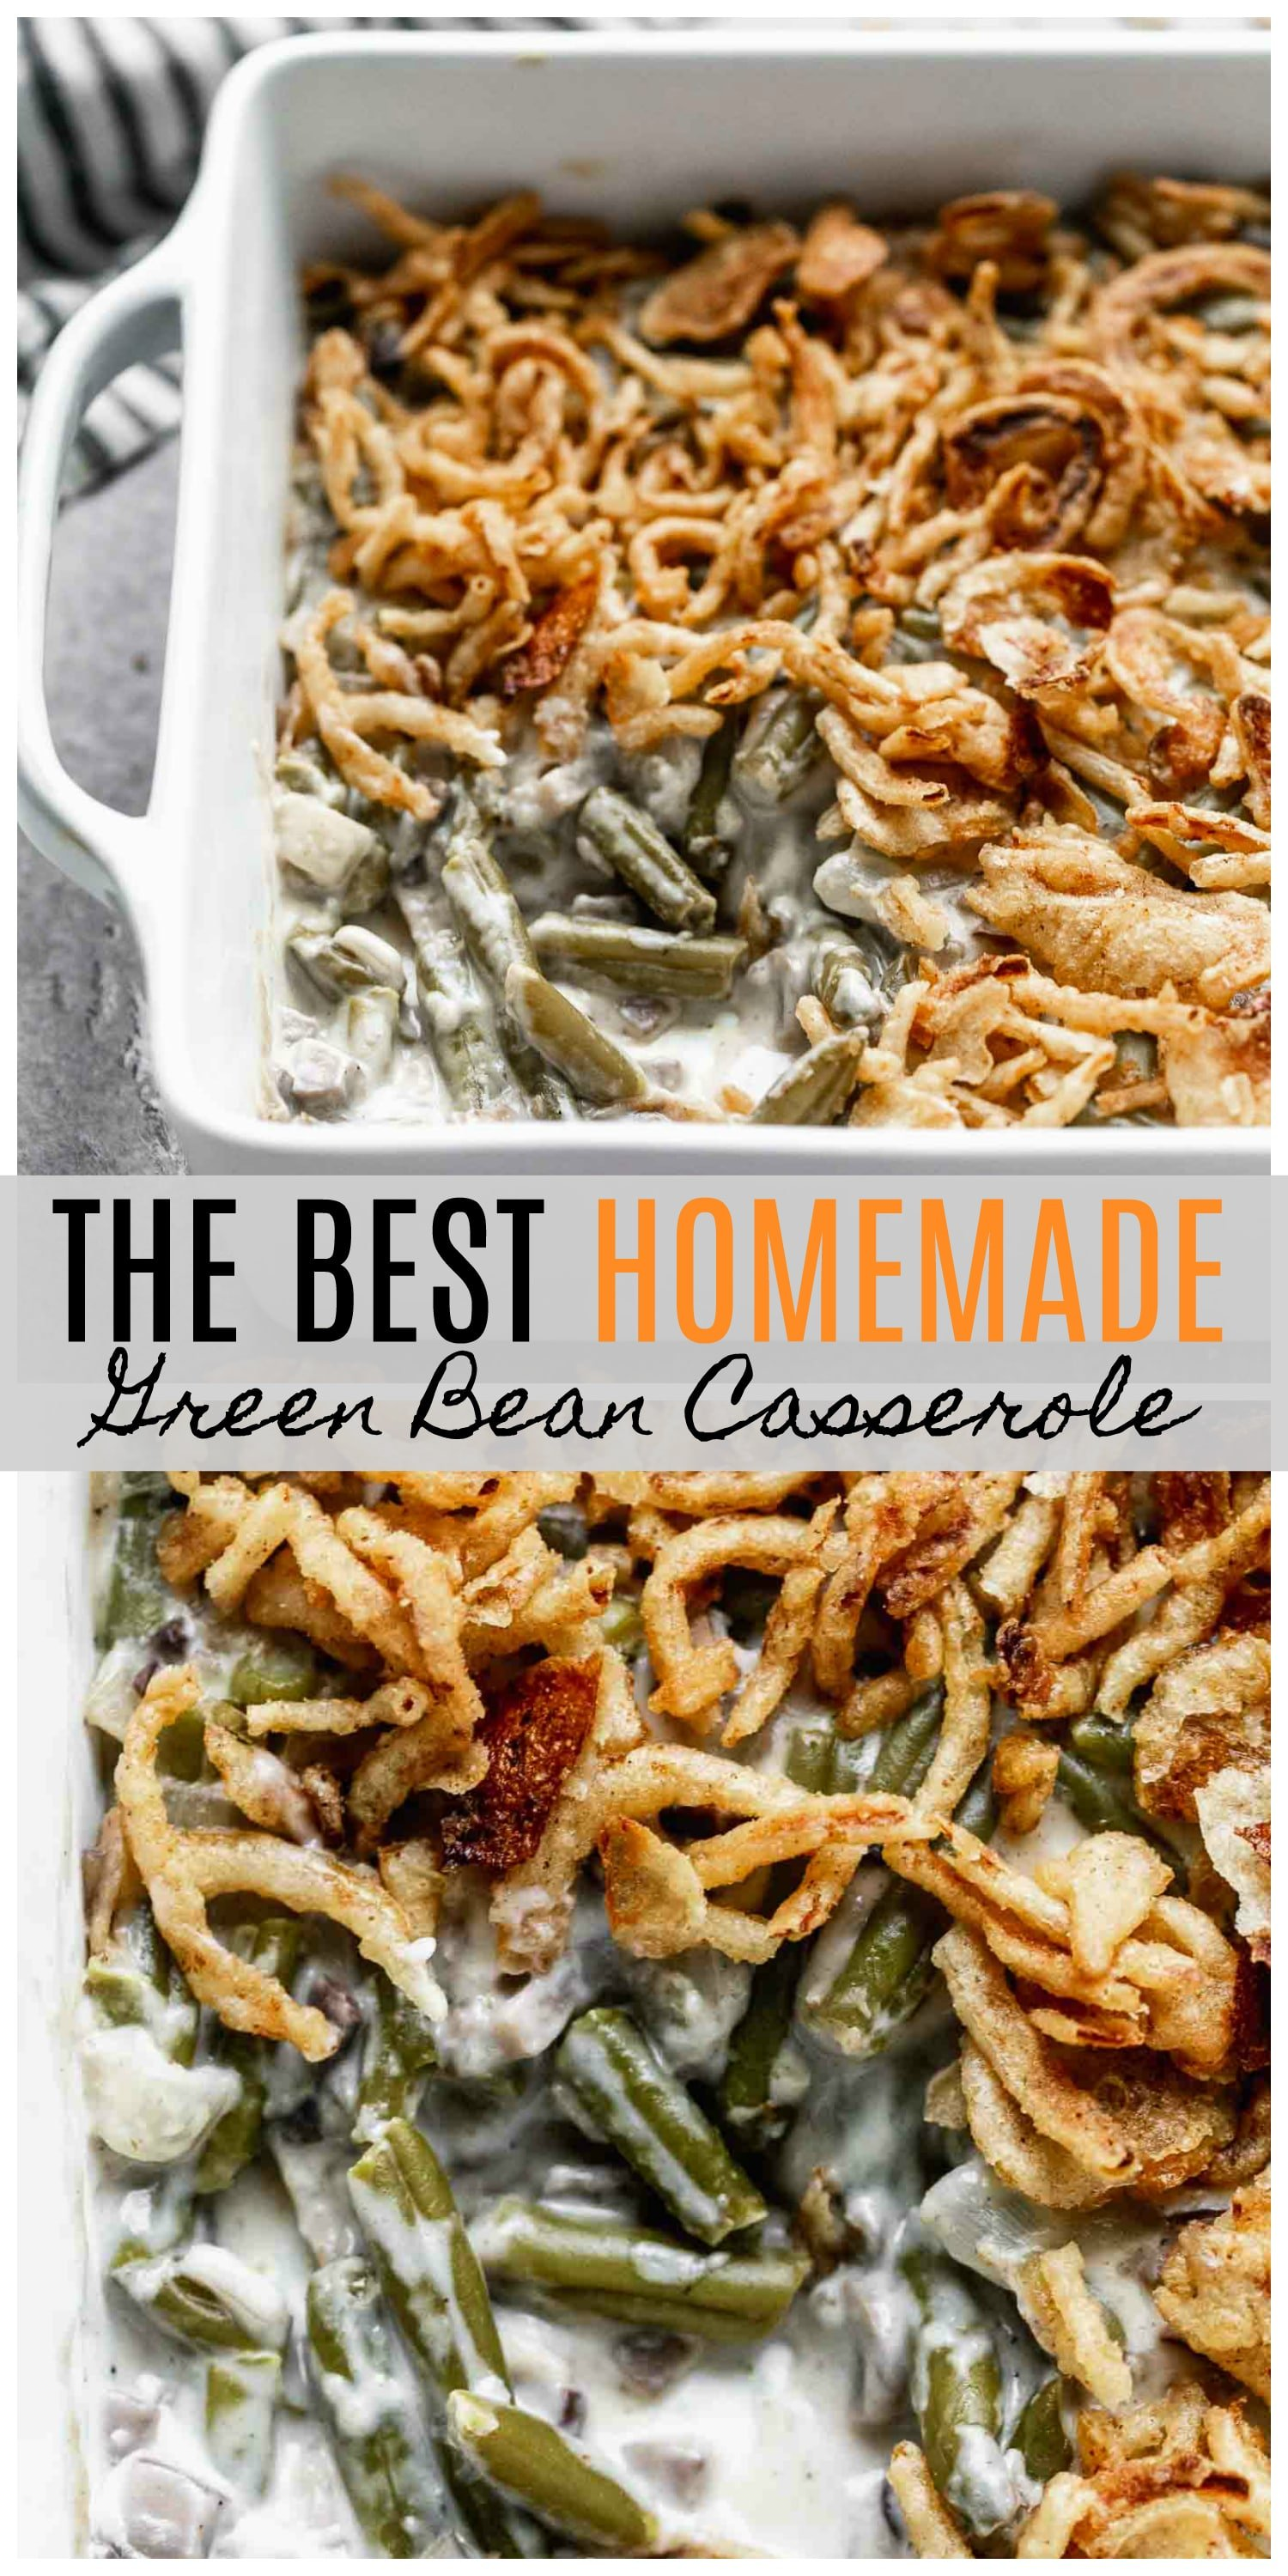 The BEST Homemade Green Bean Casserole - SO easy and no cream of mushroom soup!